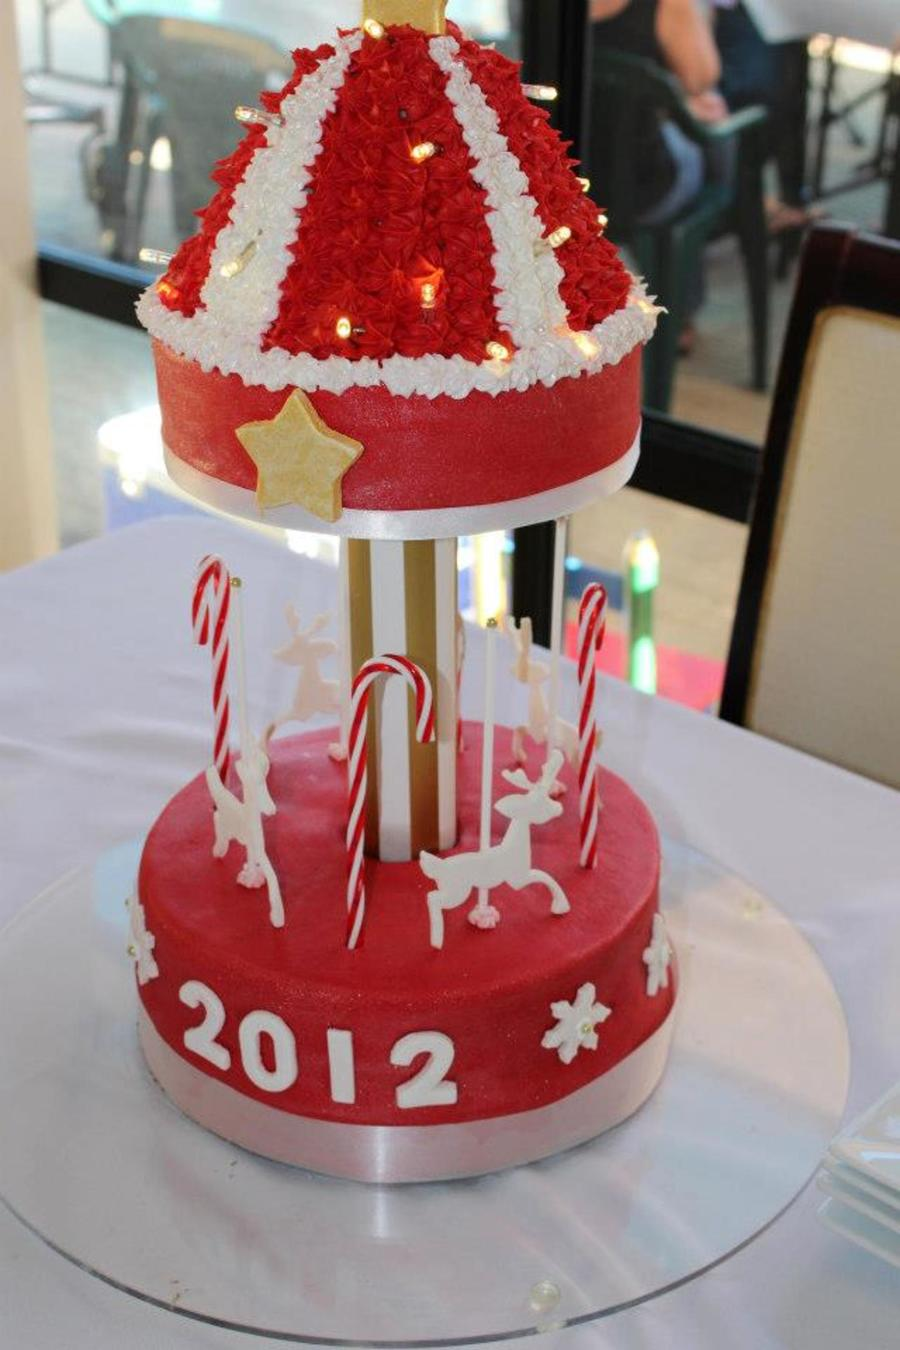 Christmas 2012 on Cake Central